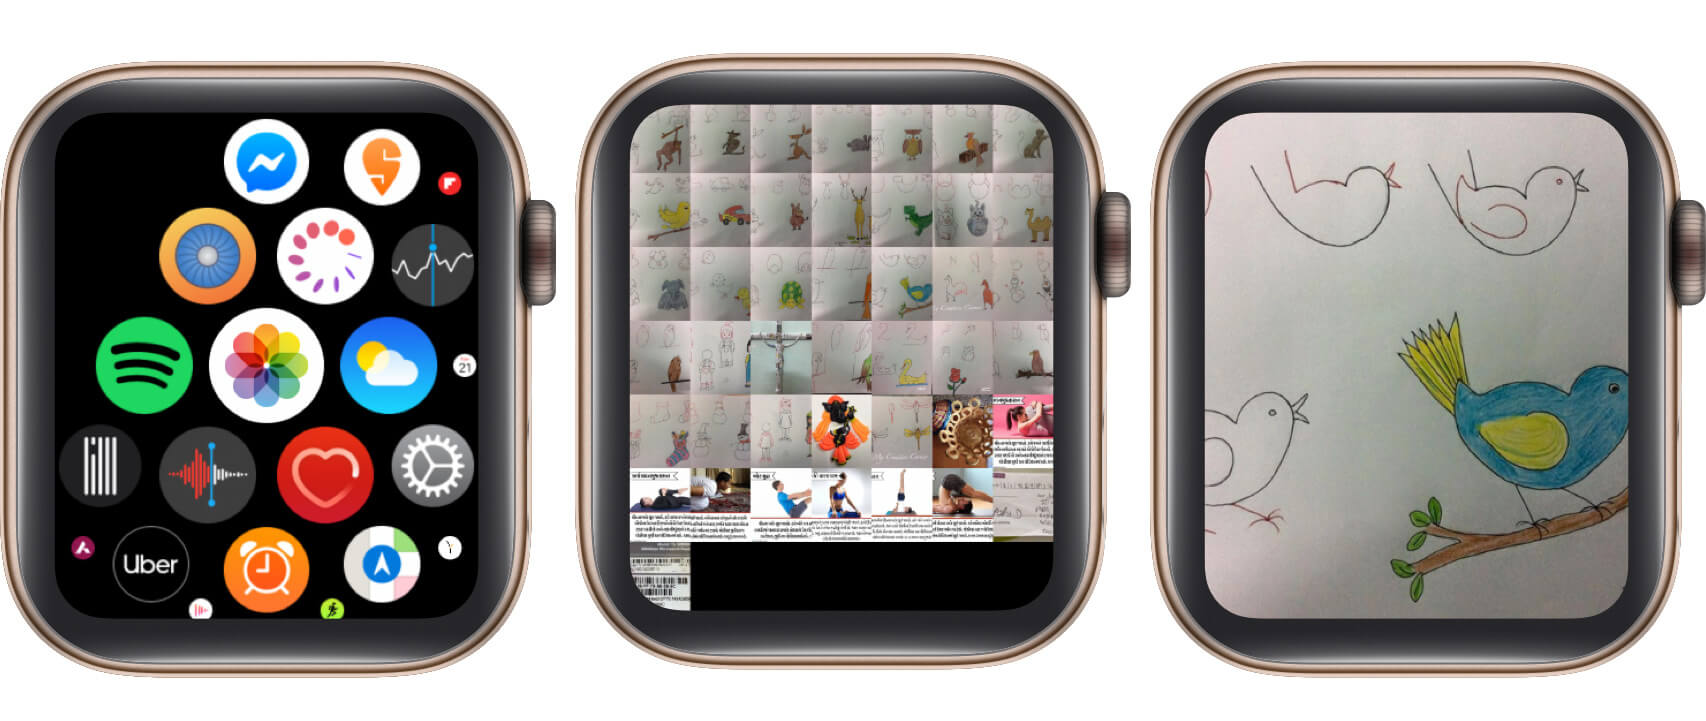 open the Photos app, tap the photo on the Apple Watch